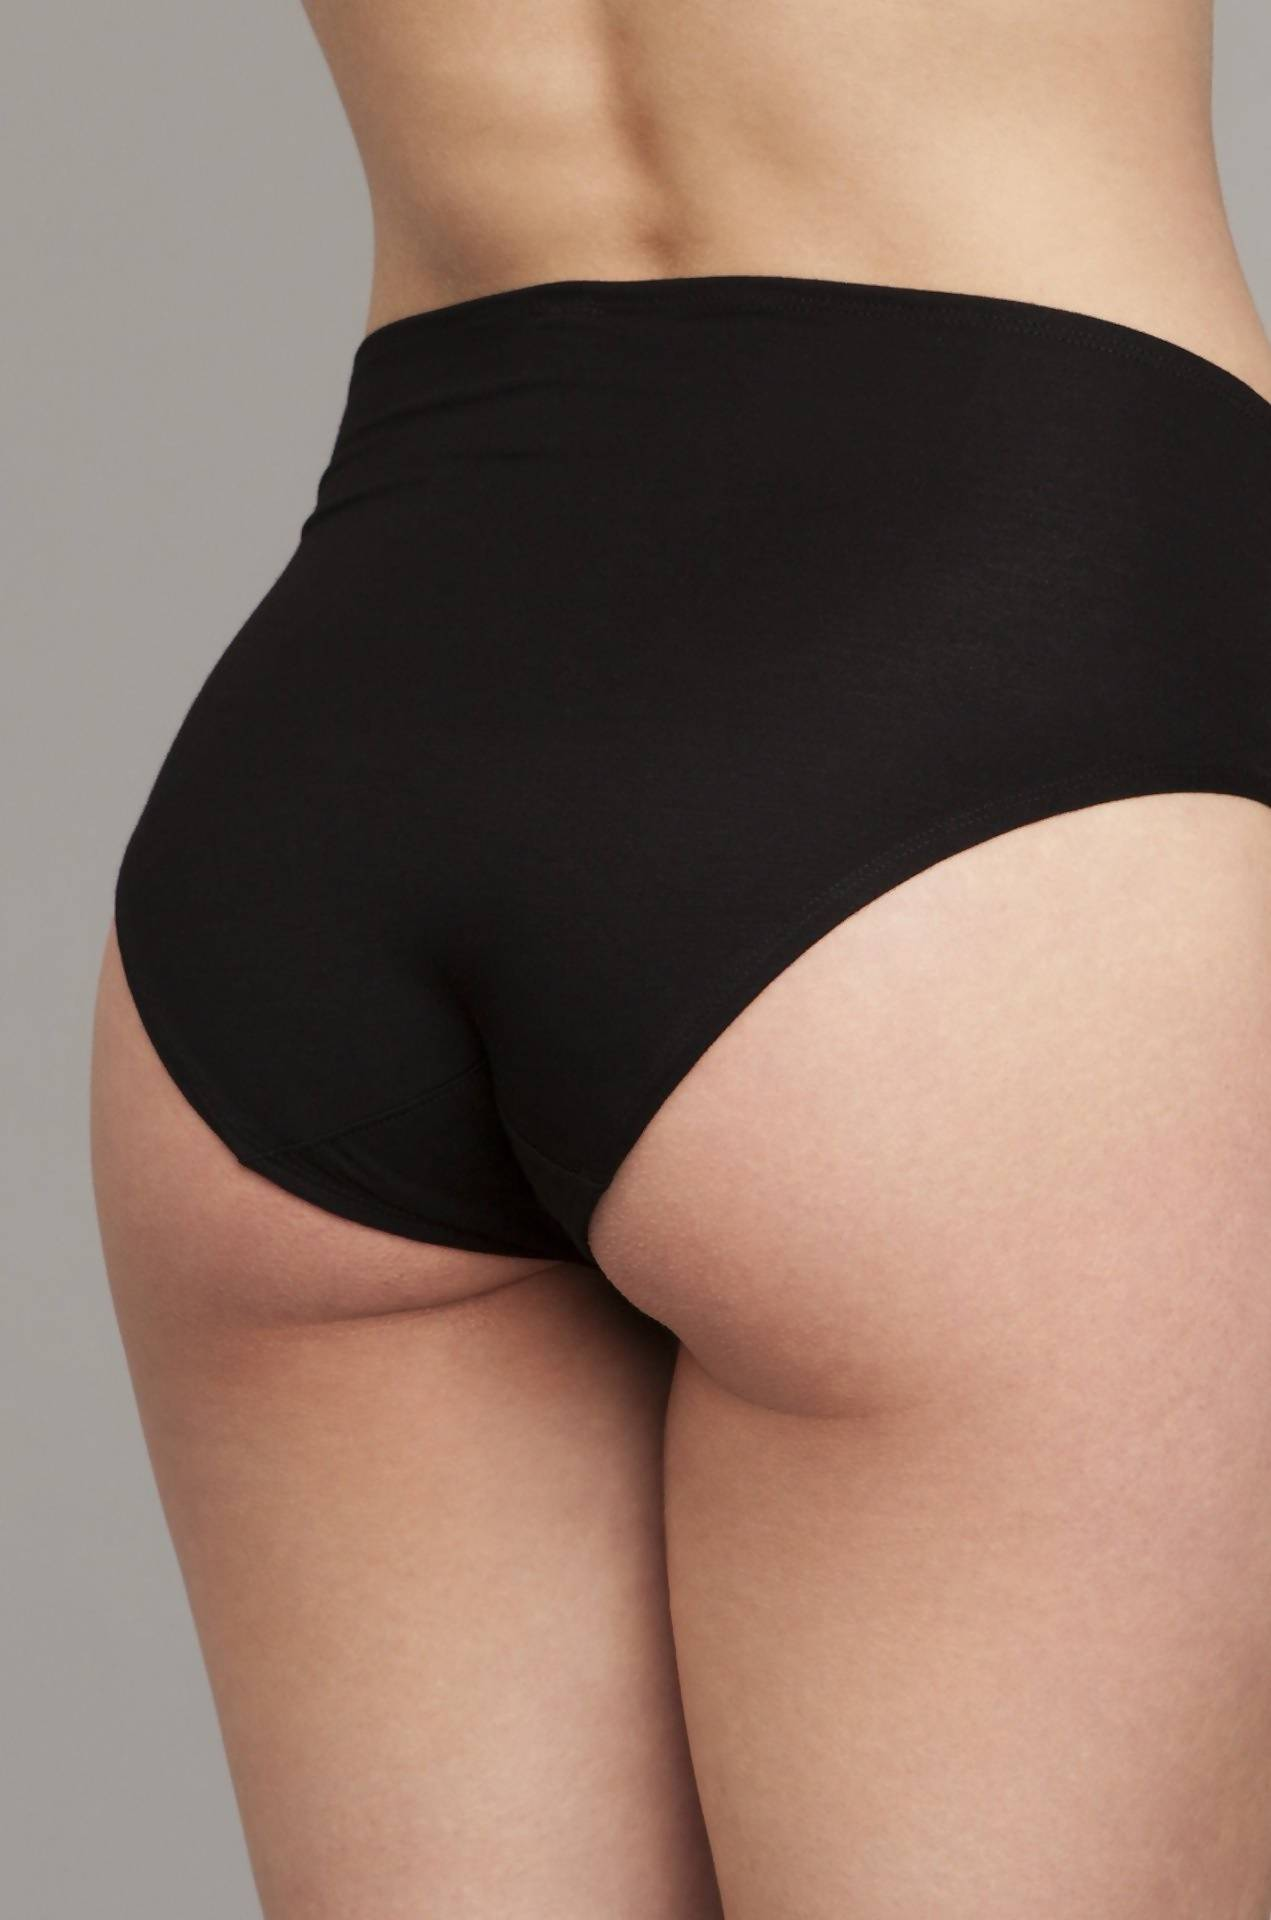 The Bonnie- High-Rise Retro Brief in Black